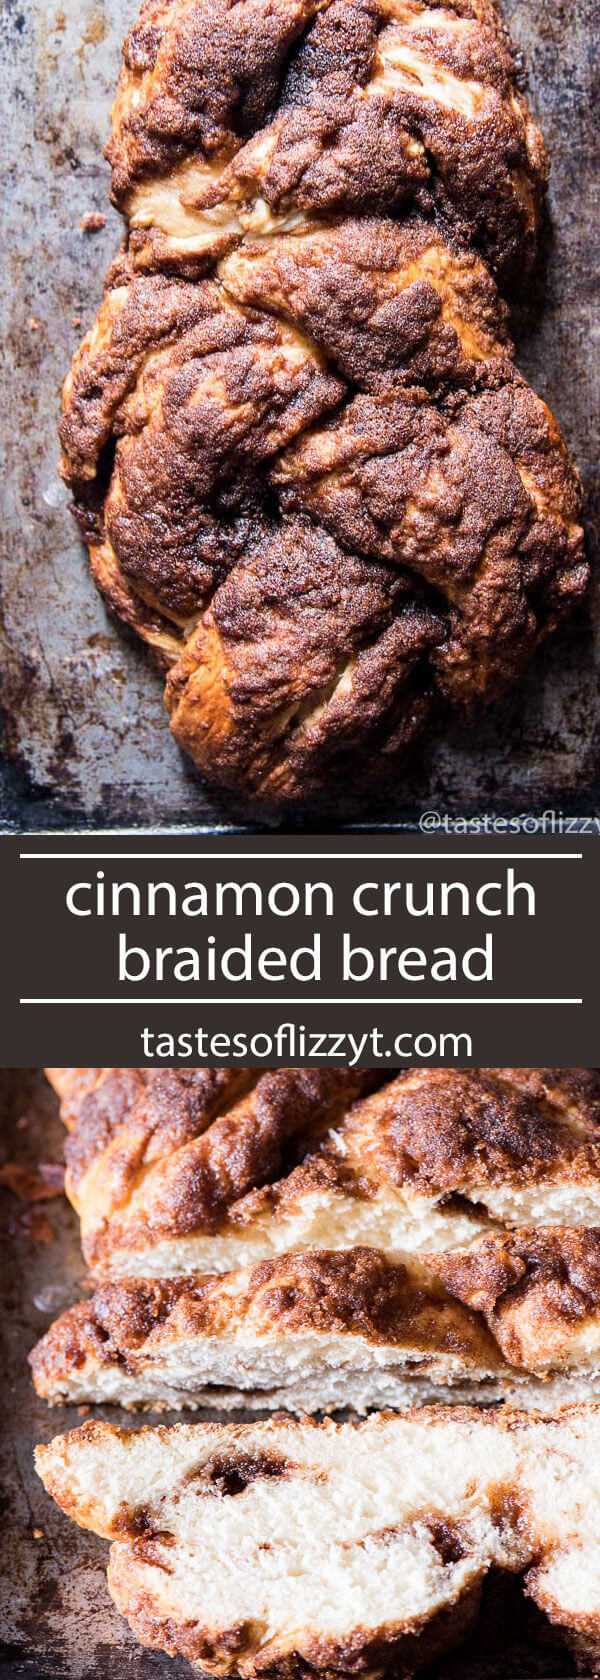 Panera has nothing on this bread recipe! Soft, homemade bread makes up this cinnamon crunch braided bread. Homemade cinnamon chips fill the inside! homemade bread recipe with cinnamon / panera copycat recipe